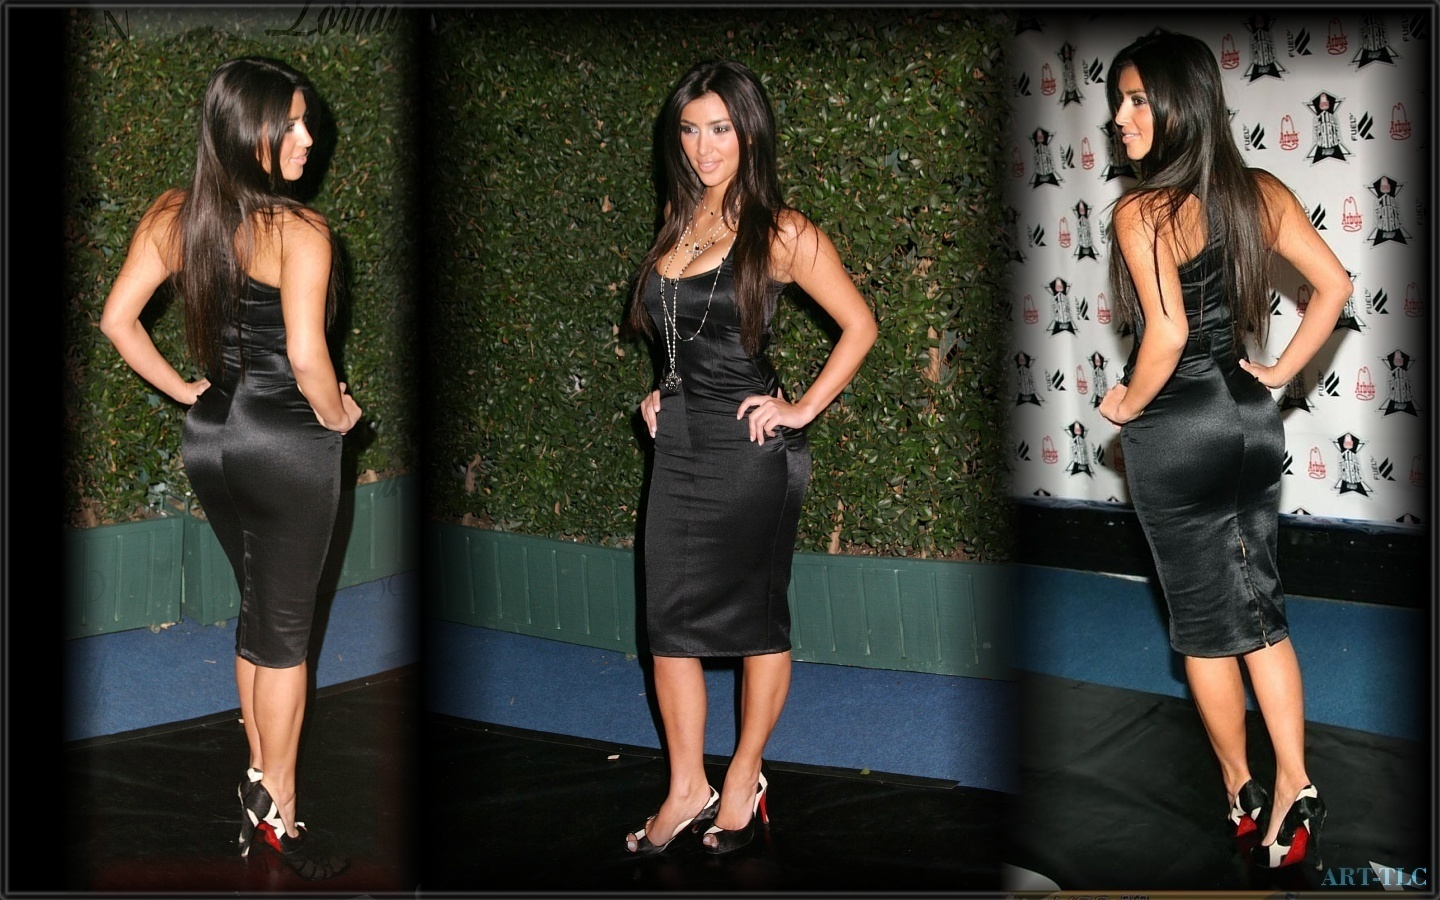 Kim wallpapers   Kim Kardashian Wallpaper 2014645 1440x900